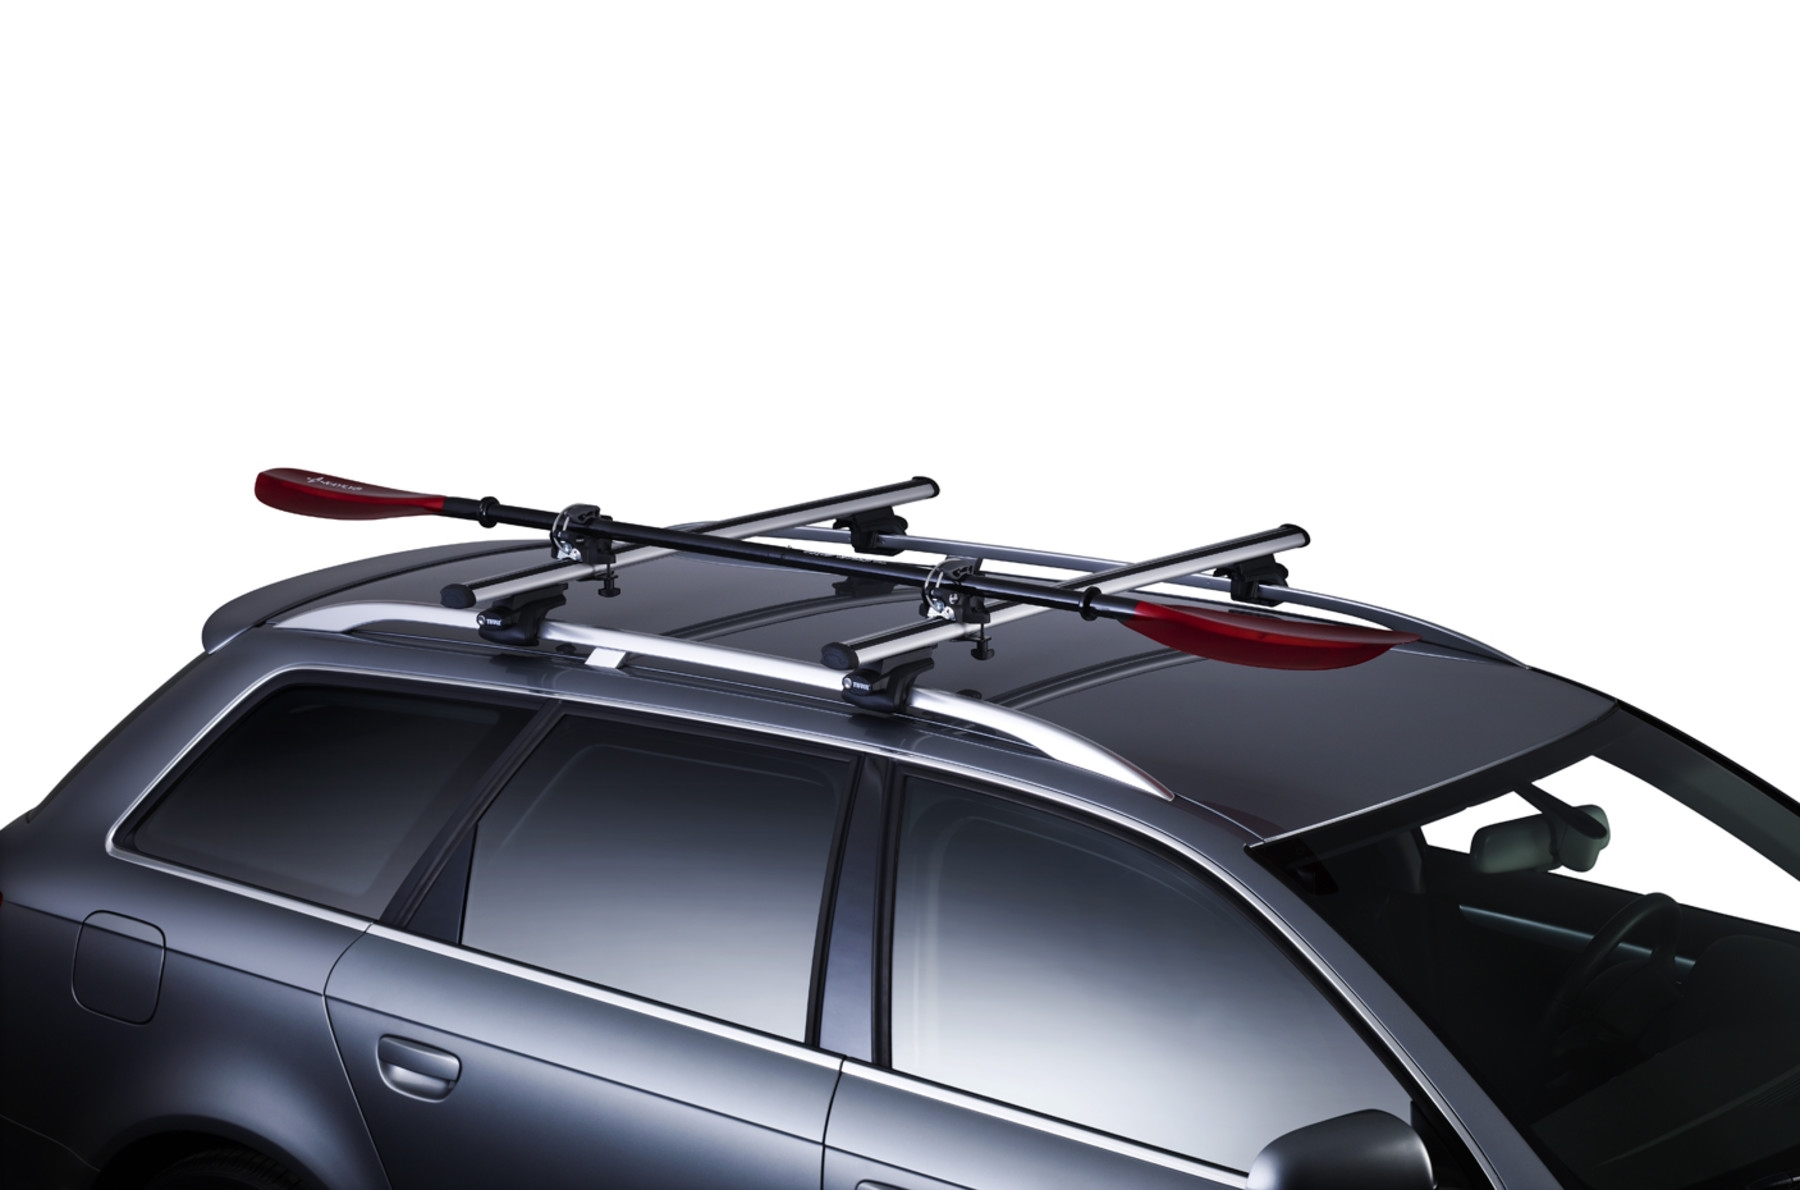 Thule Multi purpose holder 855 855